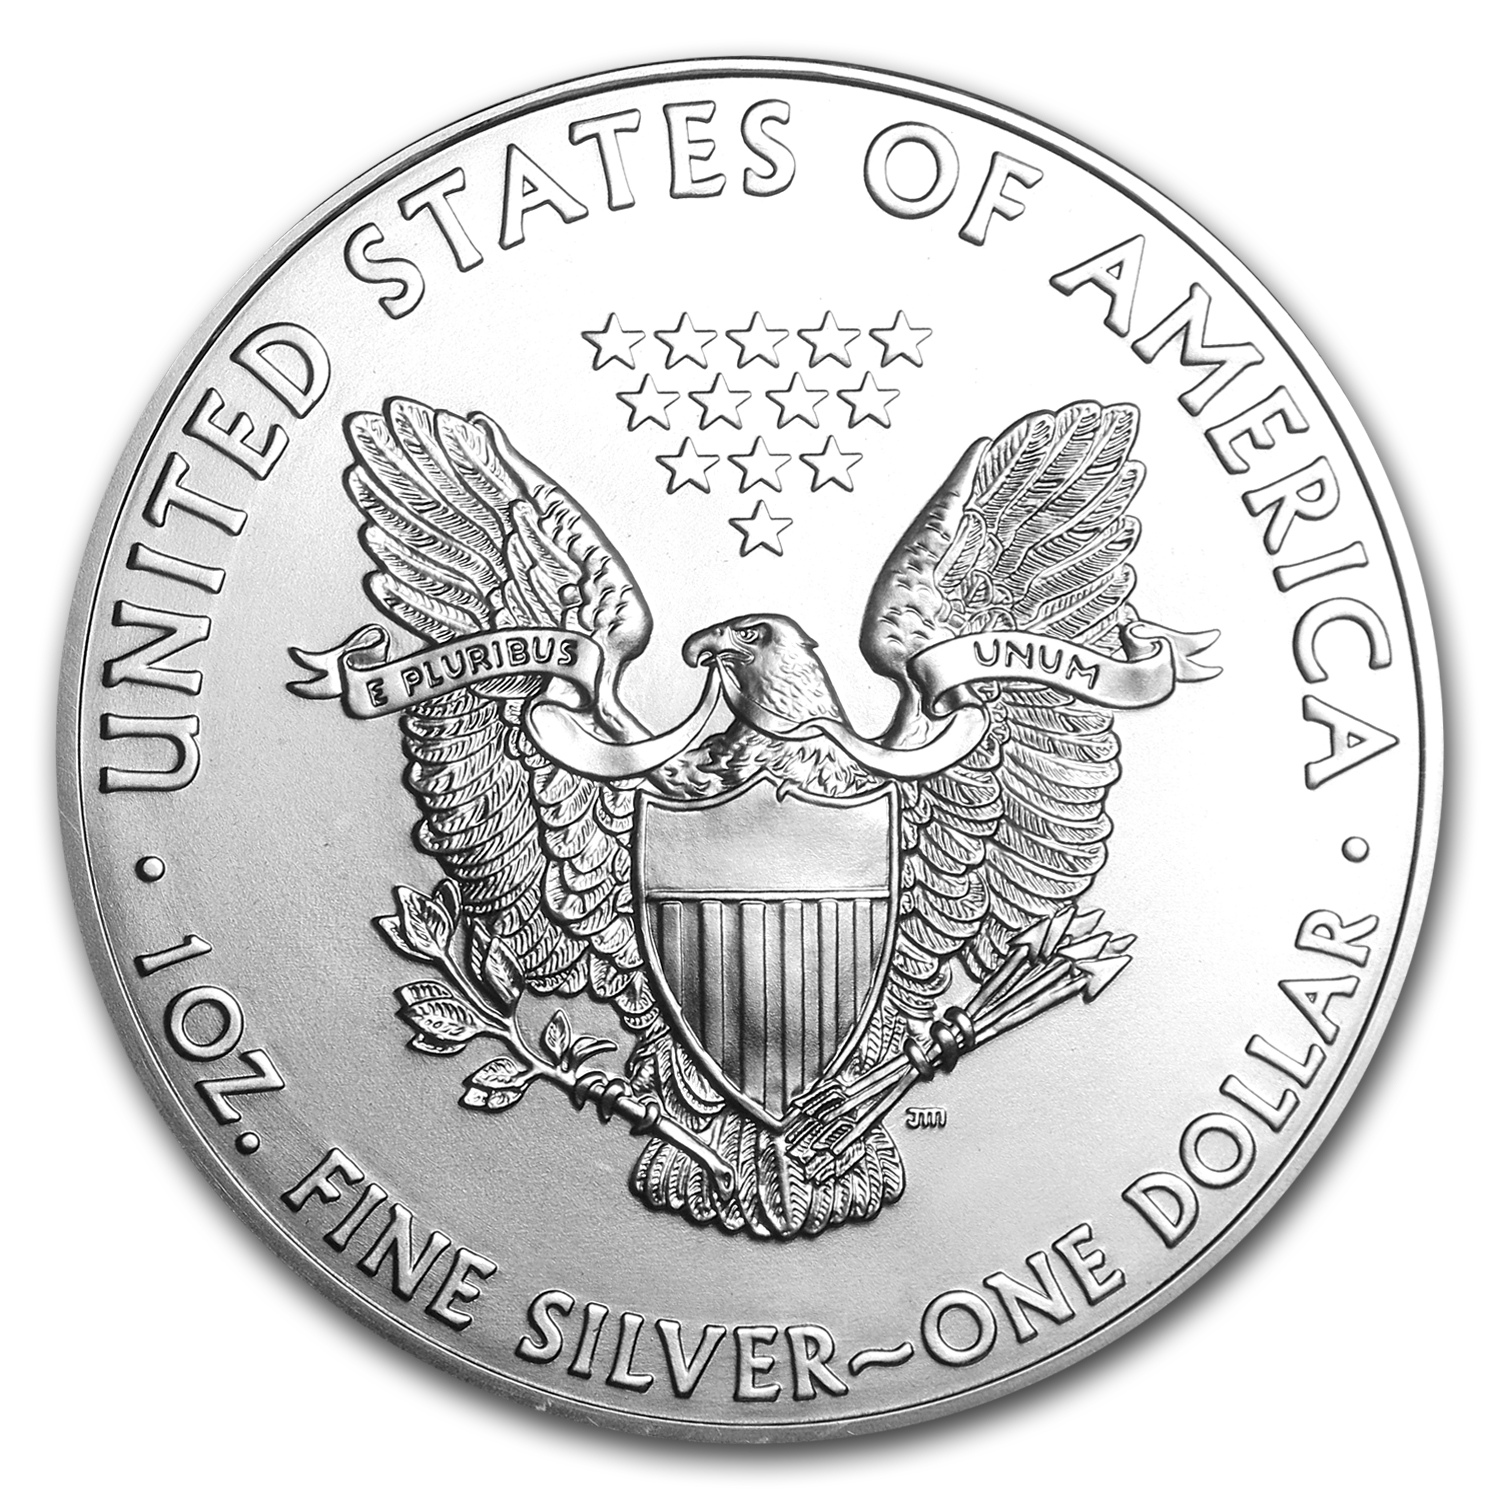 2013 1 oz Silver American Eagles (20-Coin MintDirect® Tube)